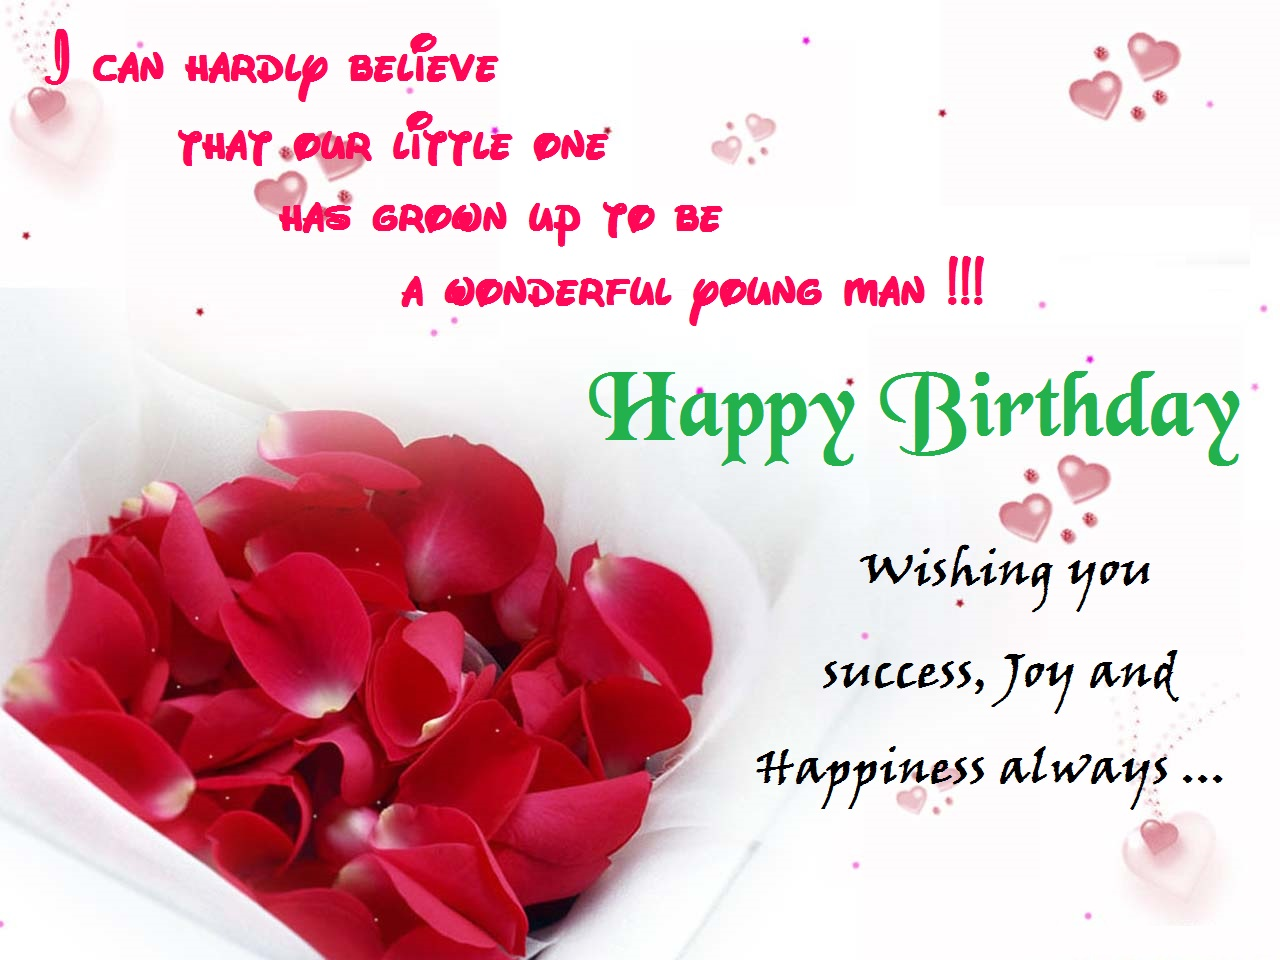 best birthday wishes wallpaper ; happy-birthday-wishes-card-full-HD-wallpaper